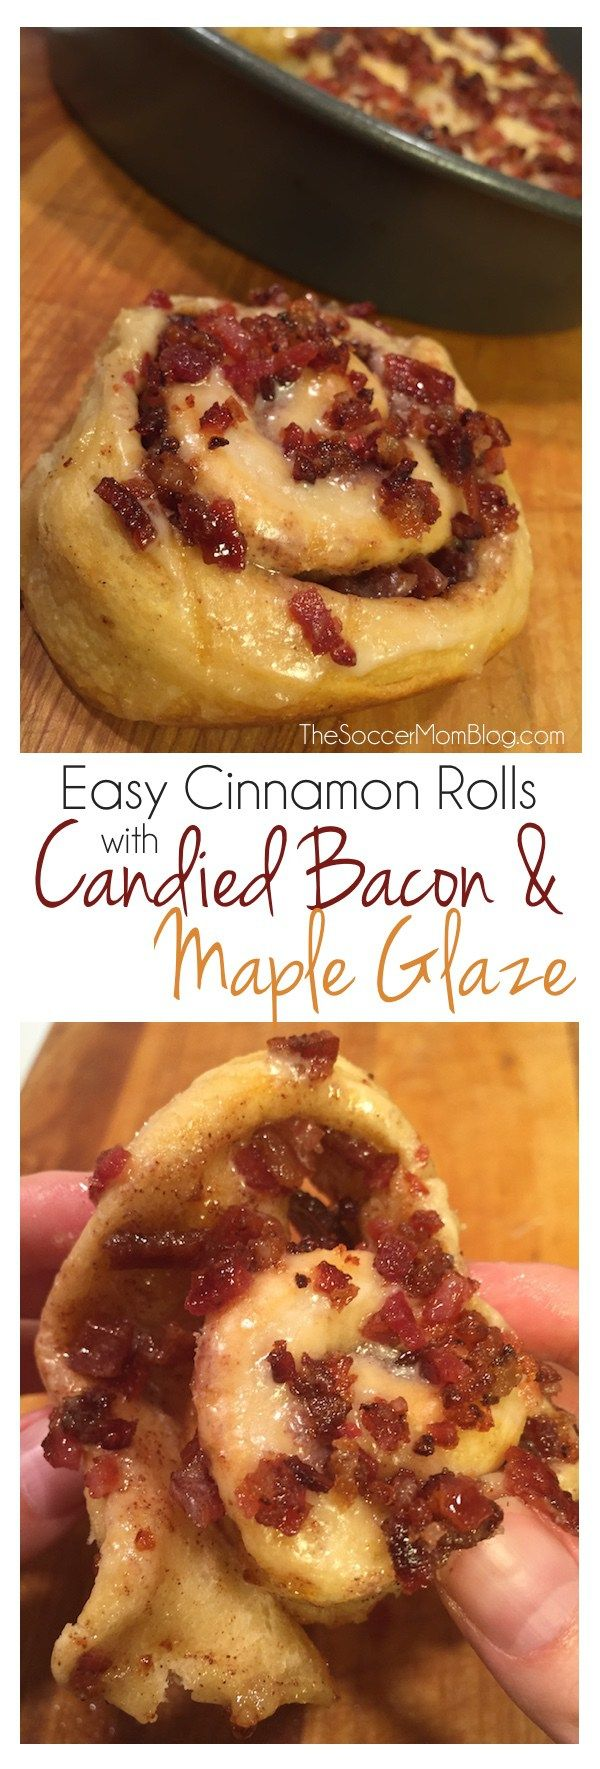 Pillsbury Cinnamon Rolls with Candied Bacon ...need I say more? This dessert is almost too delicious for words, and it's EASY! #ad